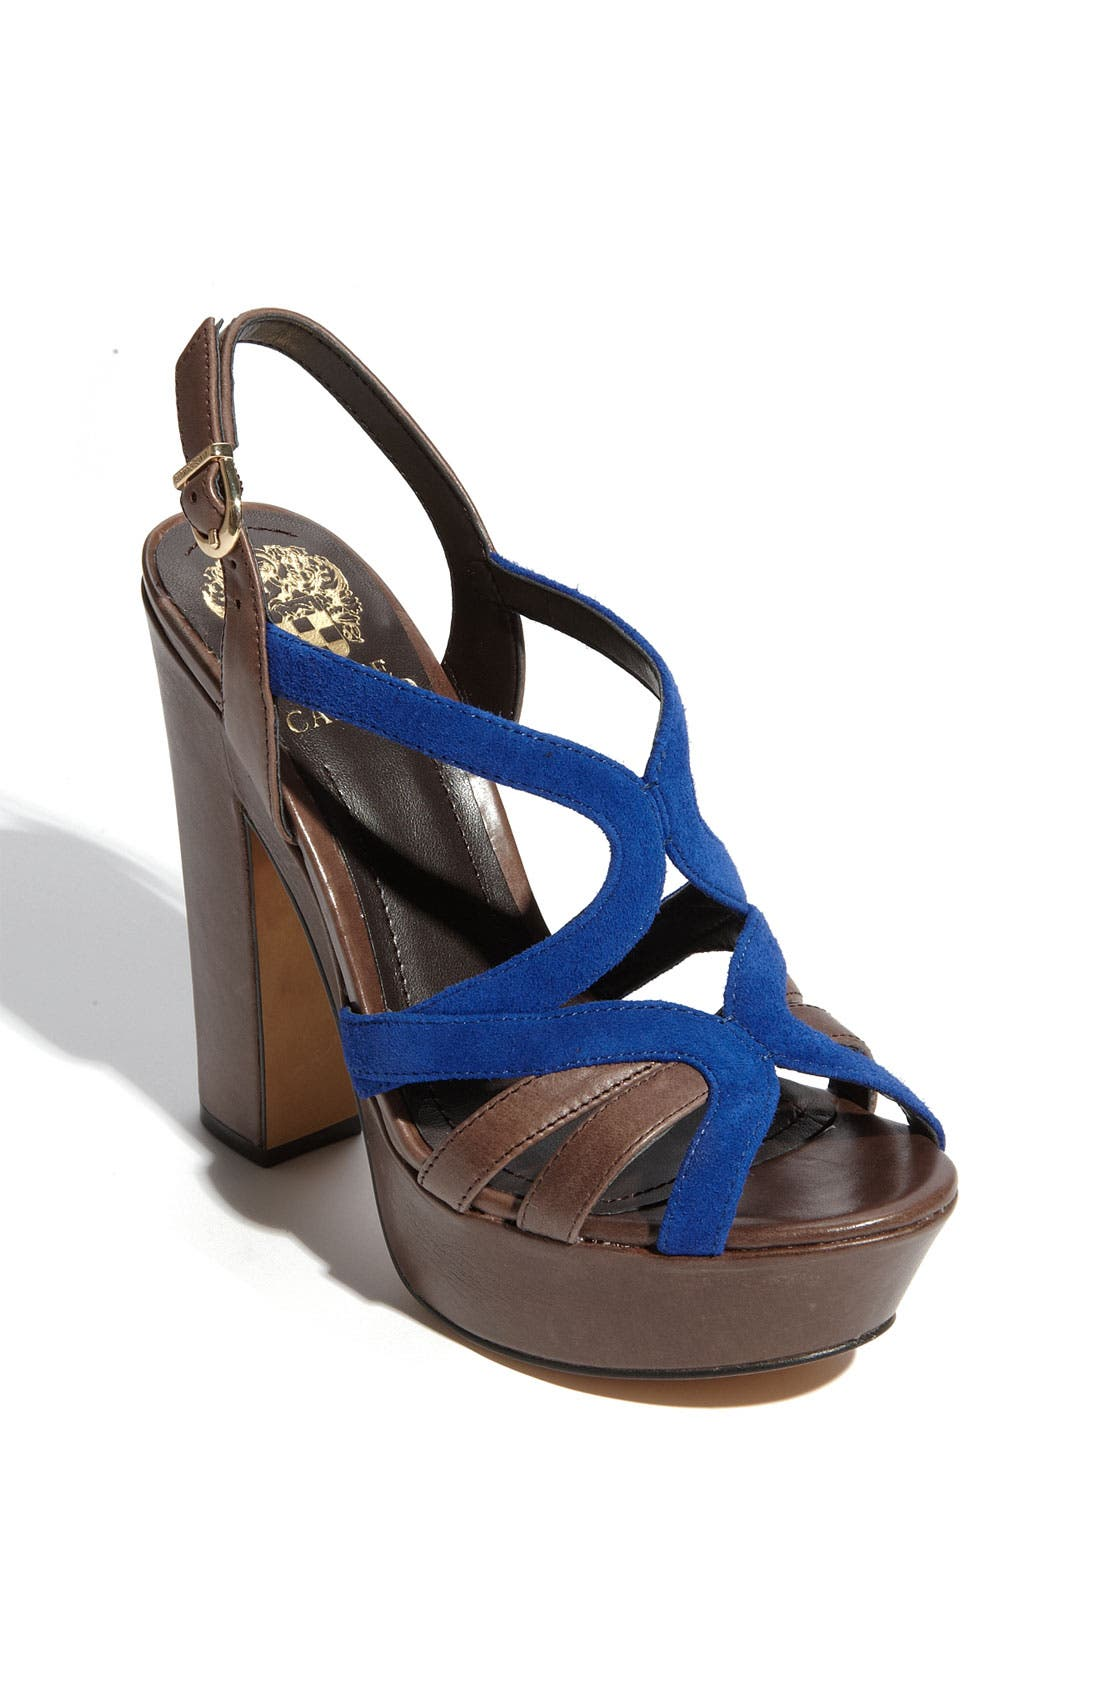 Alternate Image 1 Selected - Vince Camuto 'Deco' Sandal